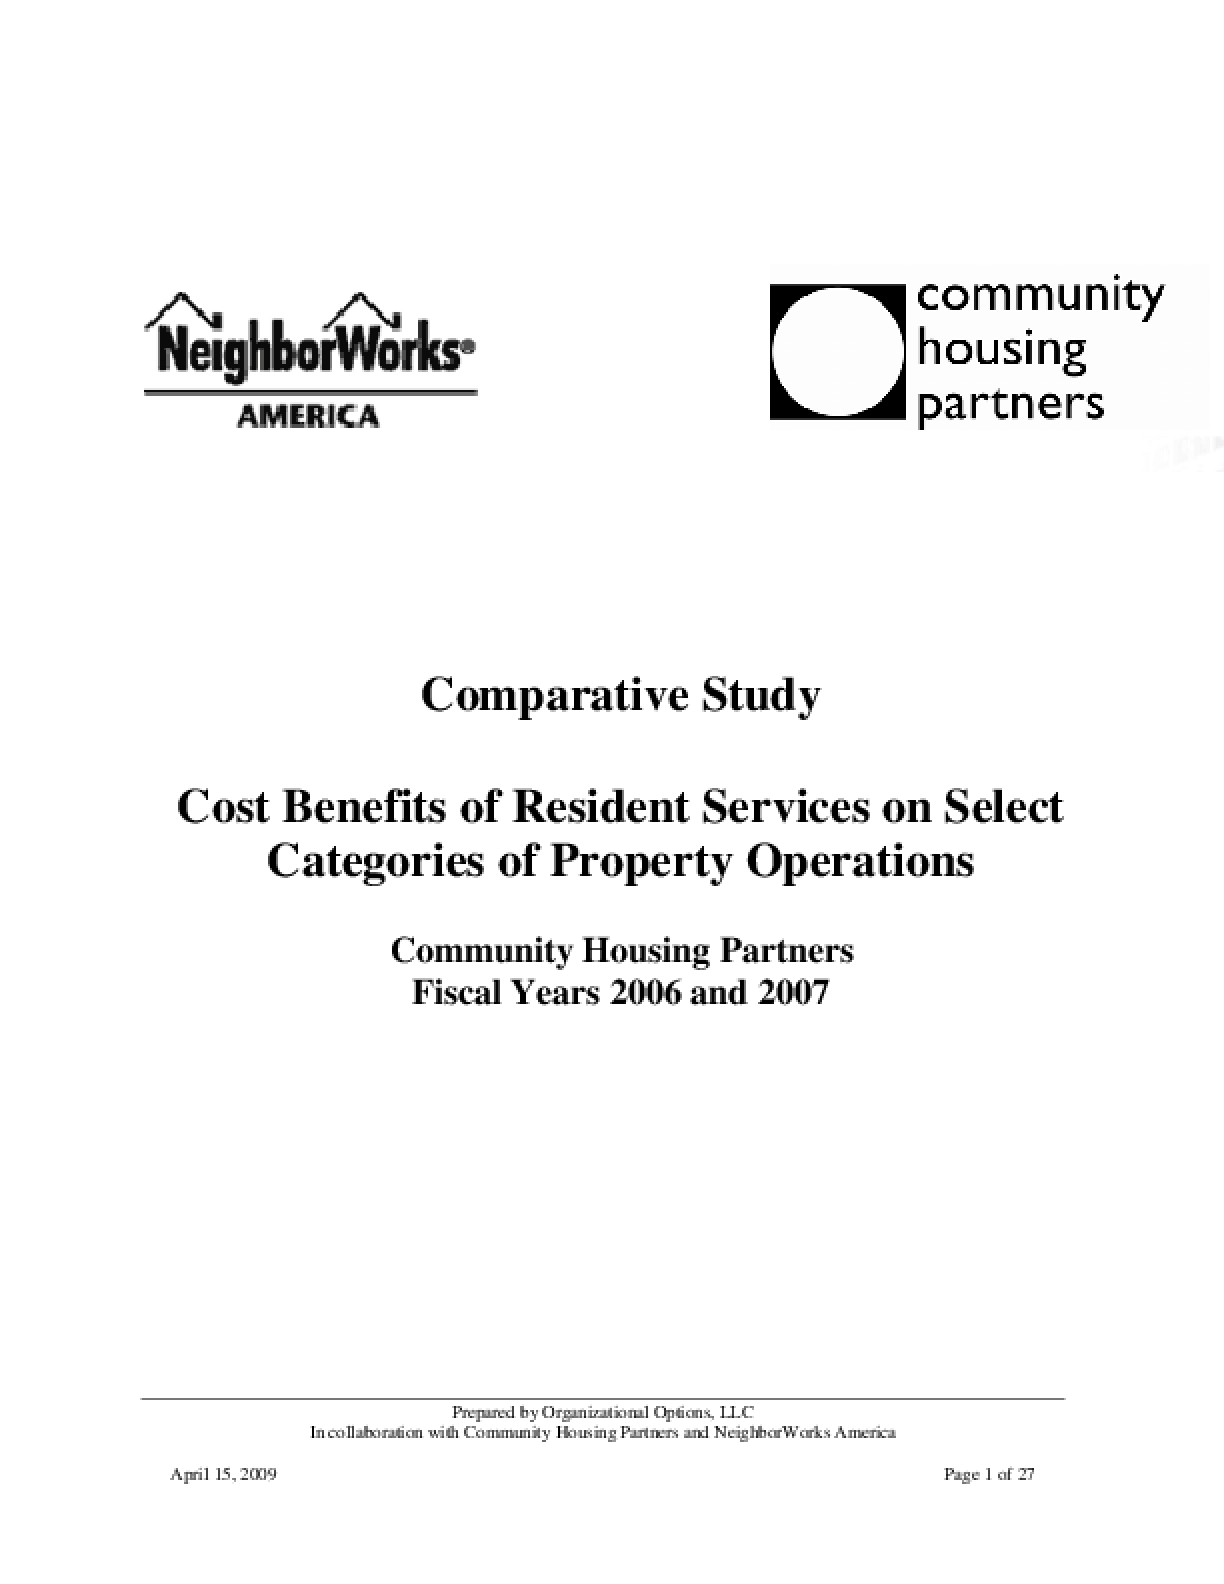 Cost Benefits of Resident Services on Select Categories of Property Operations: A Comparative Study